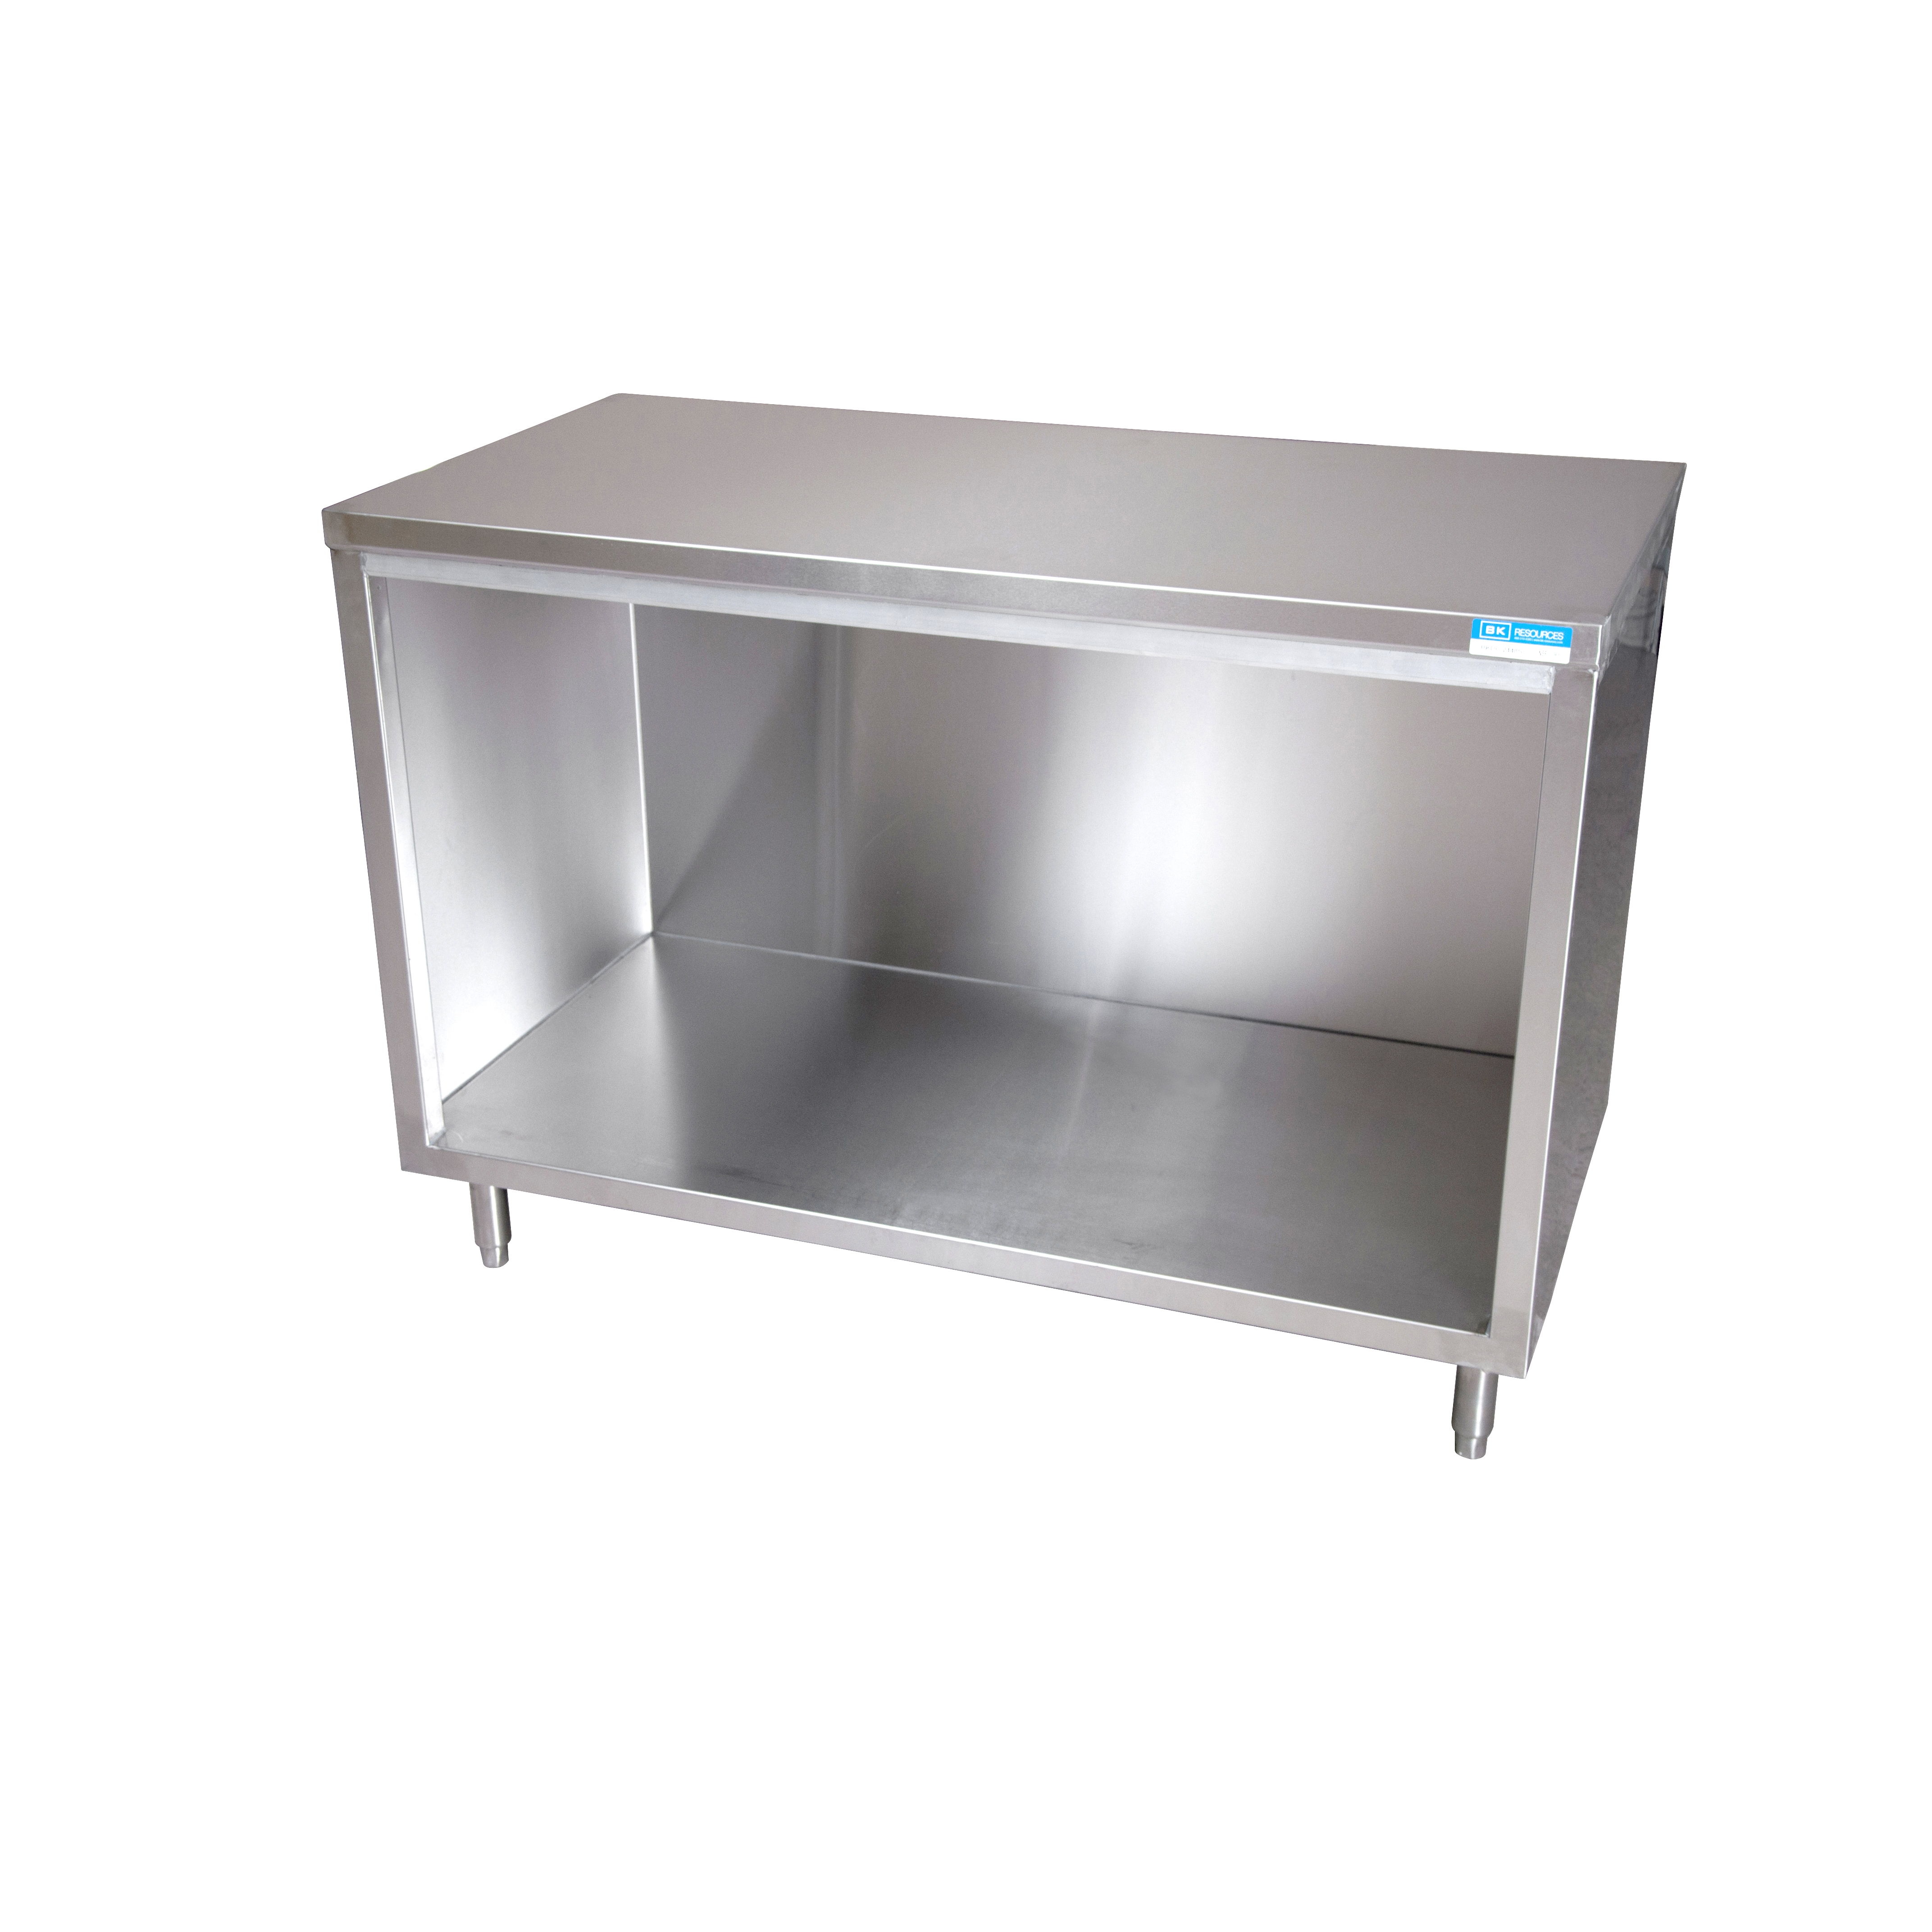 BK Resources BKDC-2460 work table, cabinet base open front